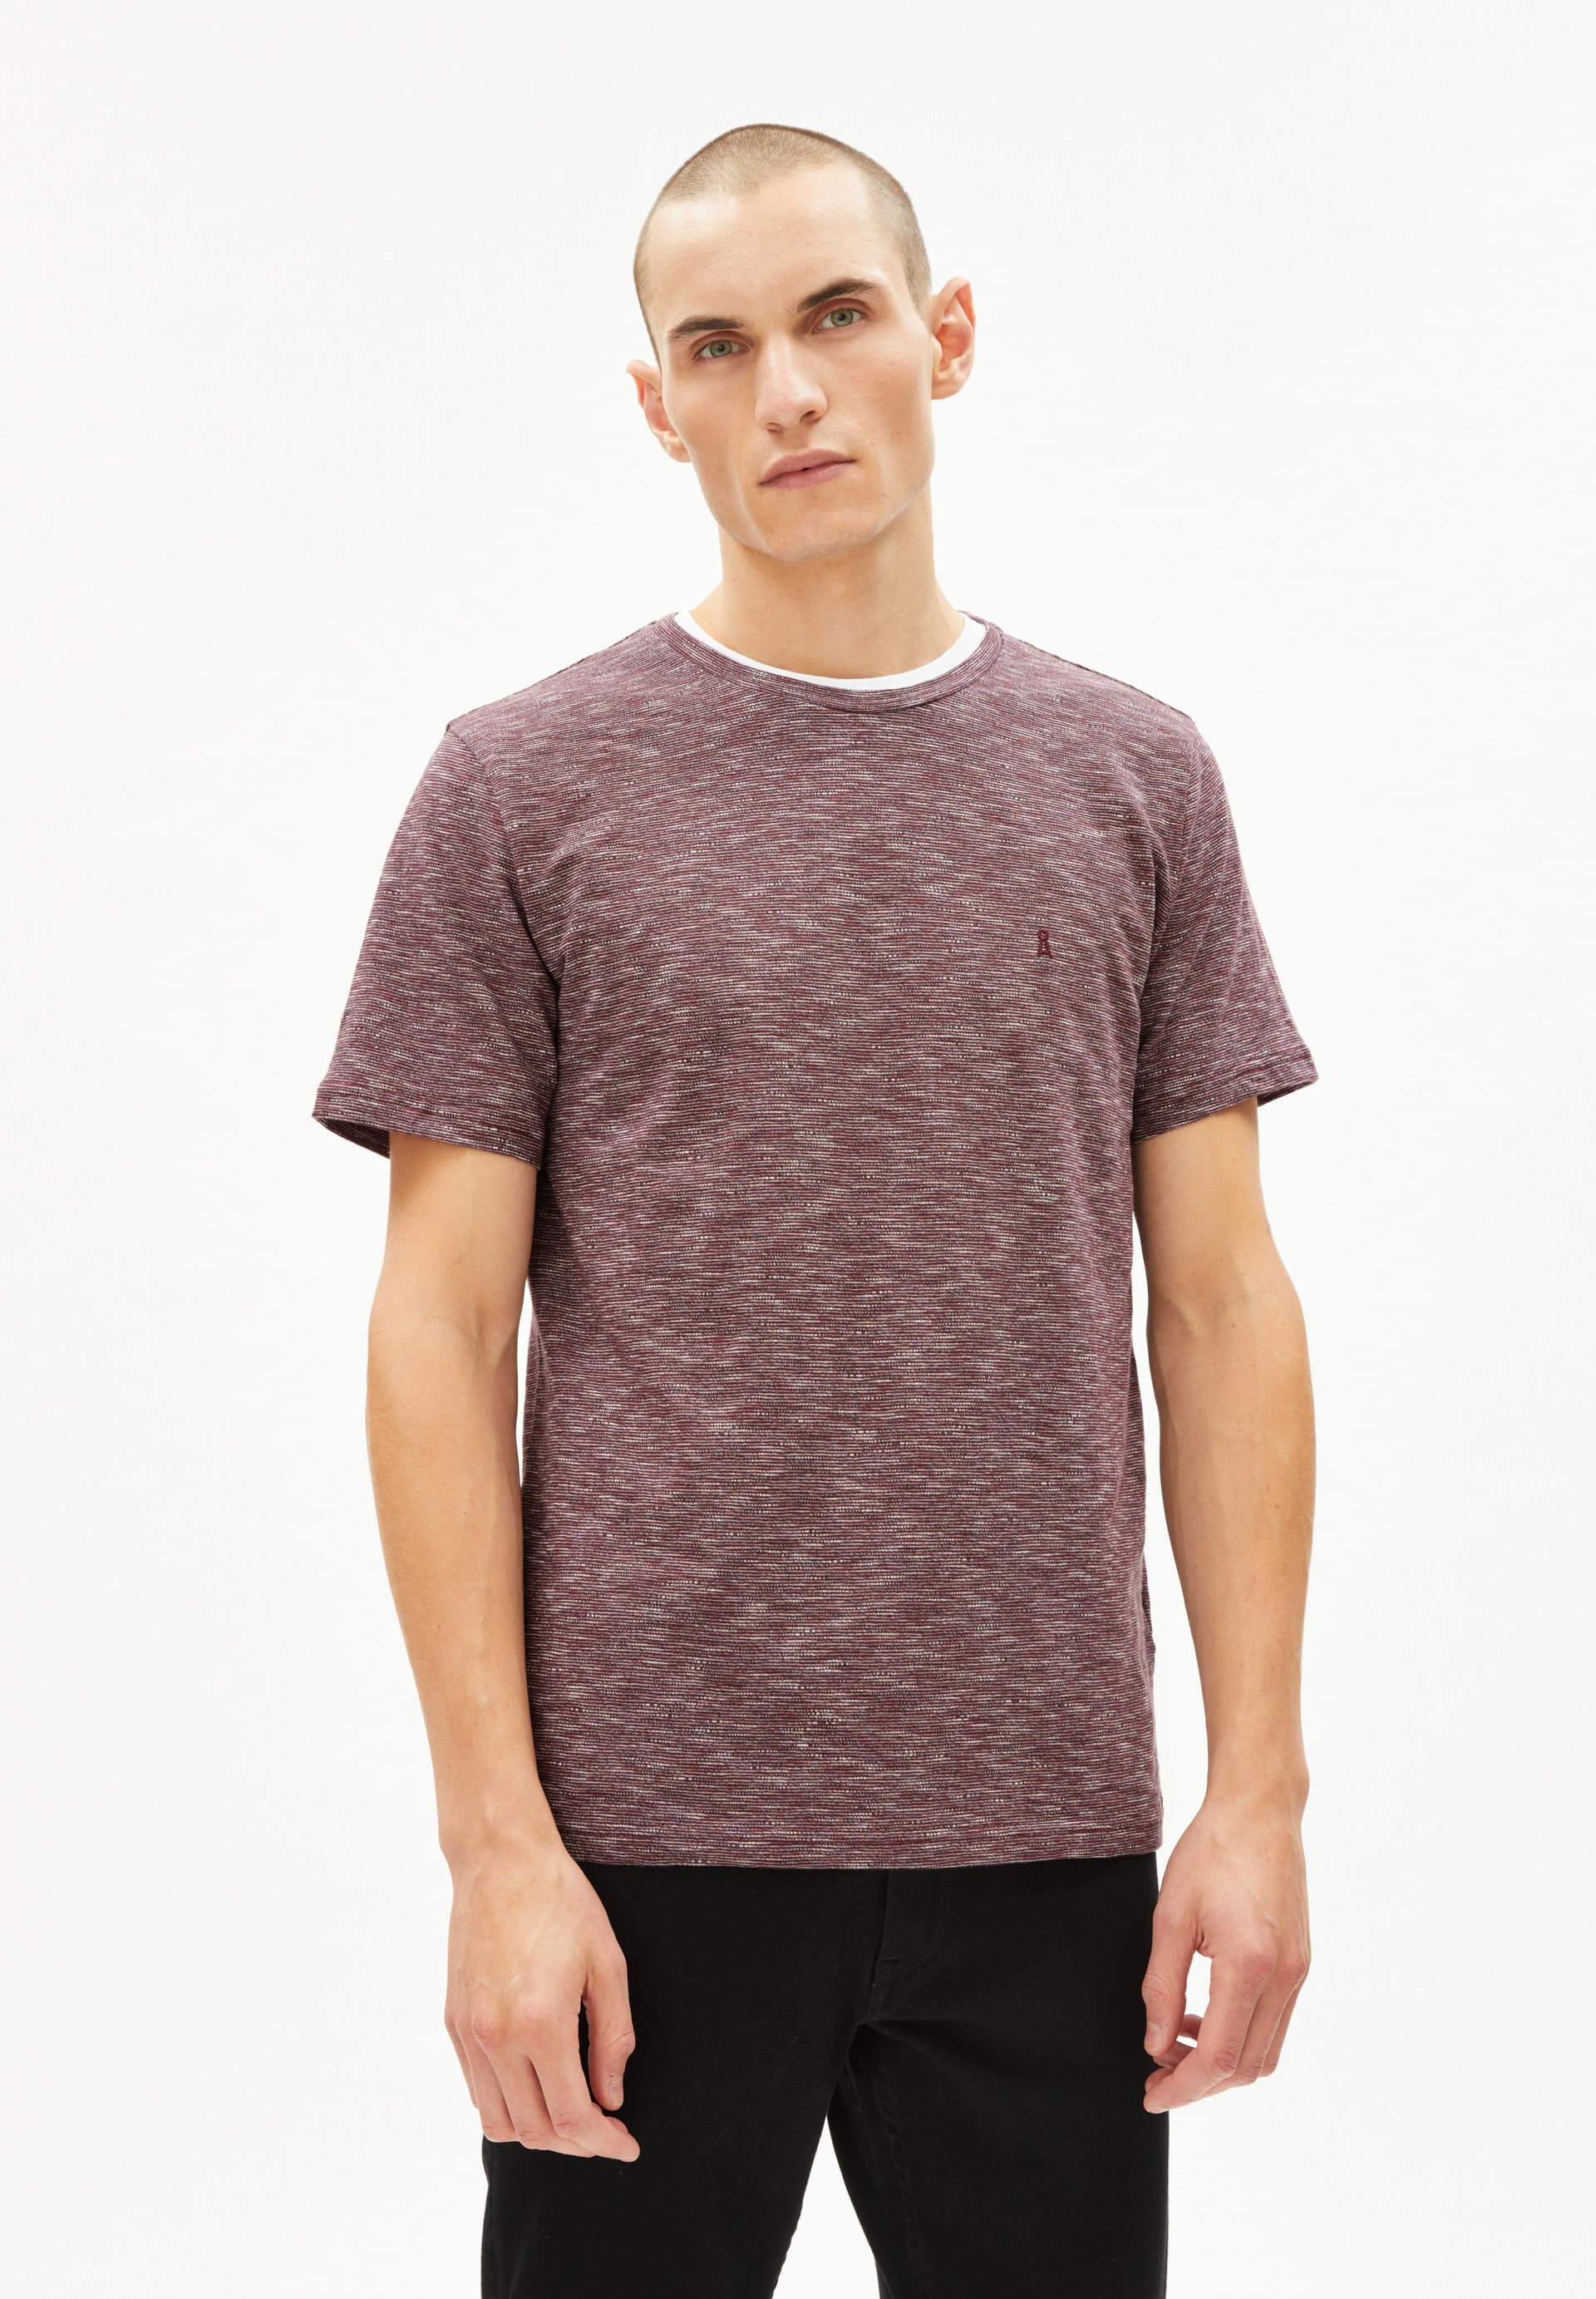 JAAMES STRUCTURE T-Shirt made of Organic Cotton